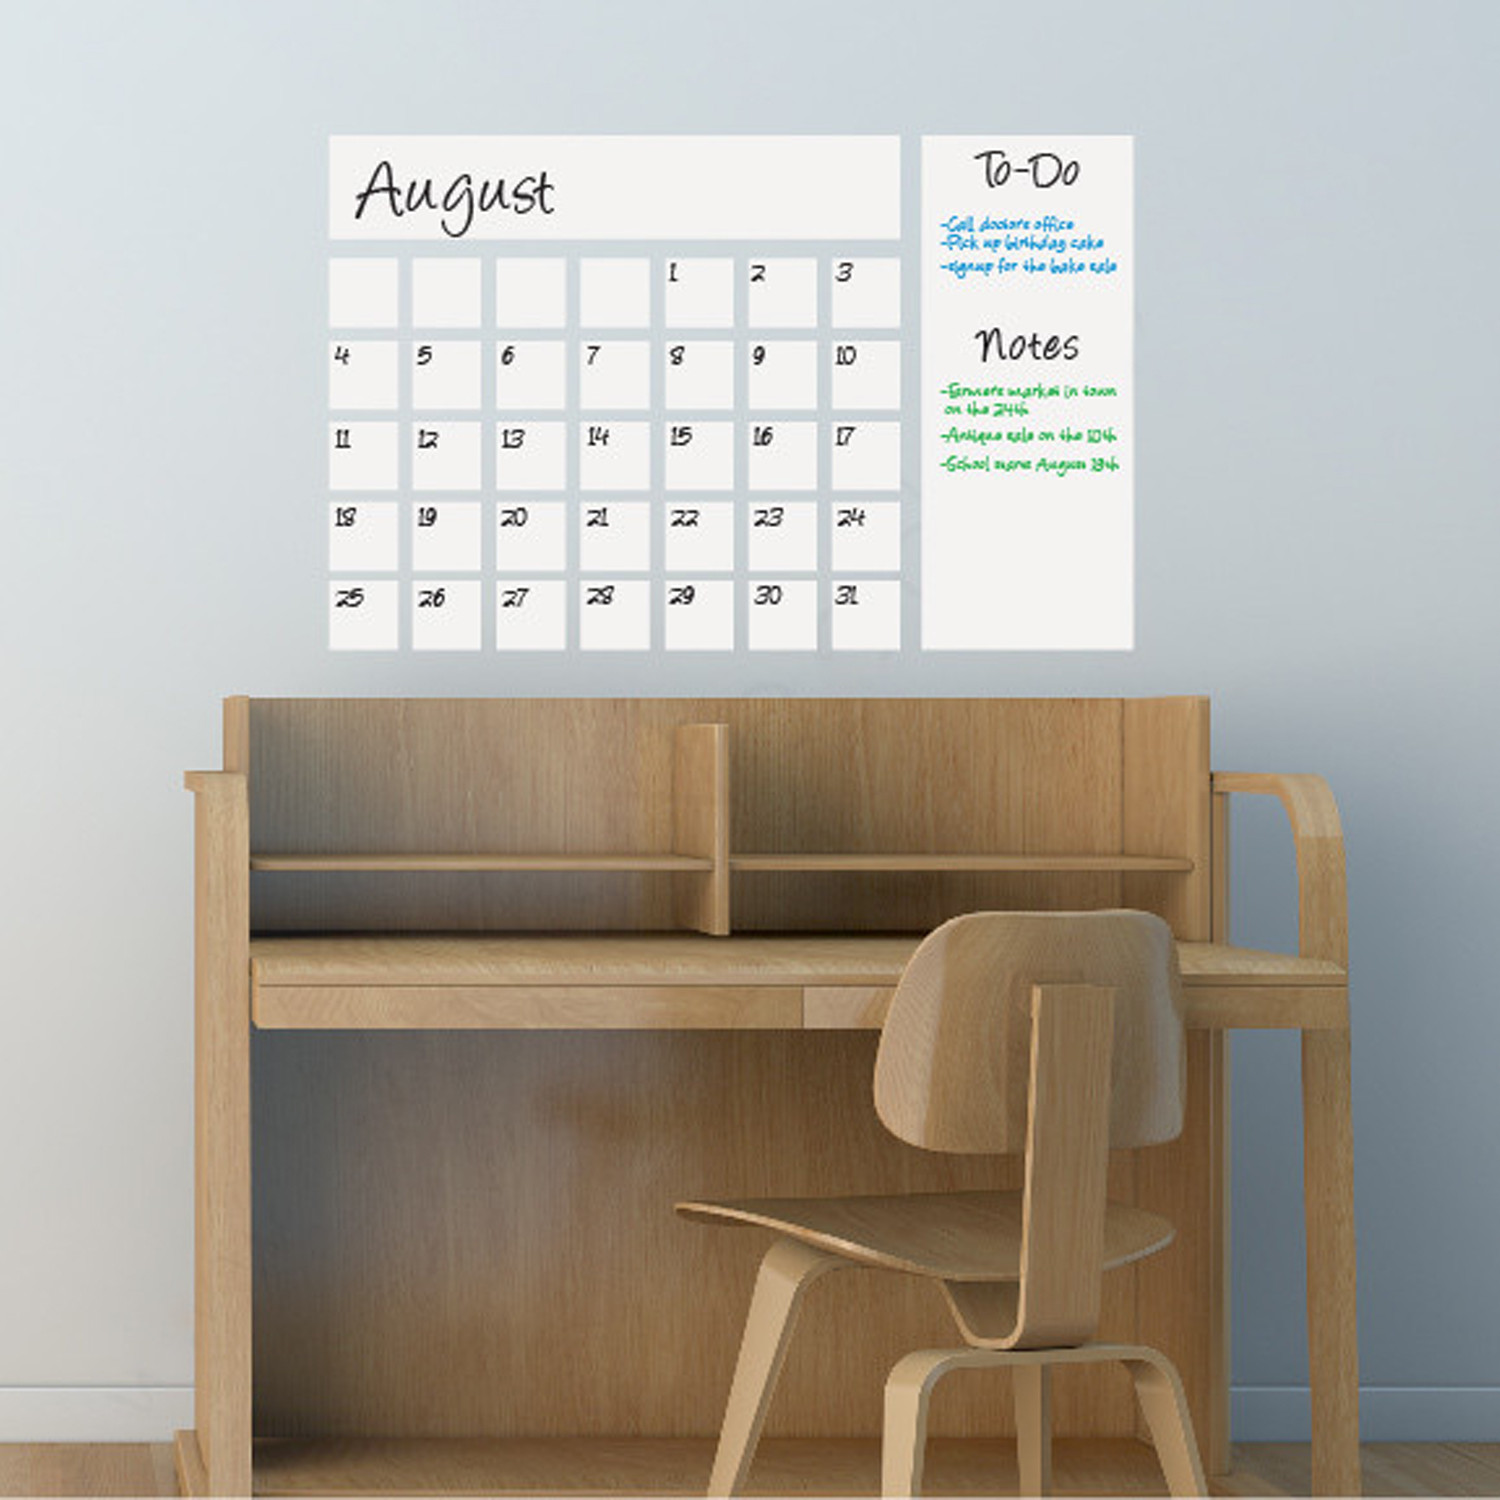 Dry Erase Calendar Decal // White & Dry Erase Calendar Decal // White - Writable Wall Calendars - Touch ...